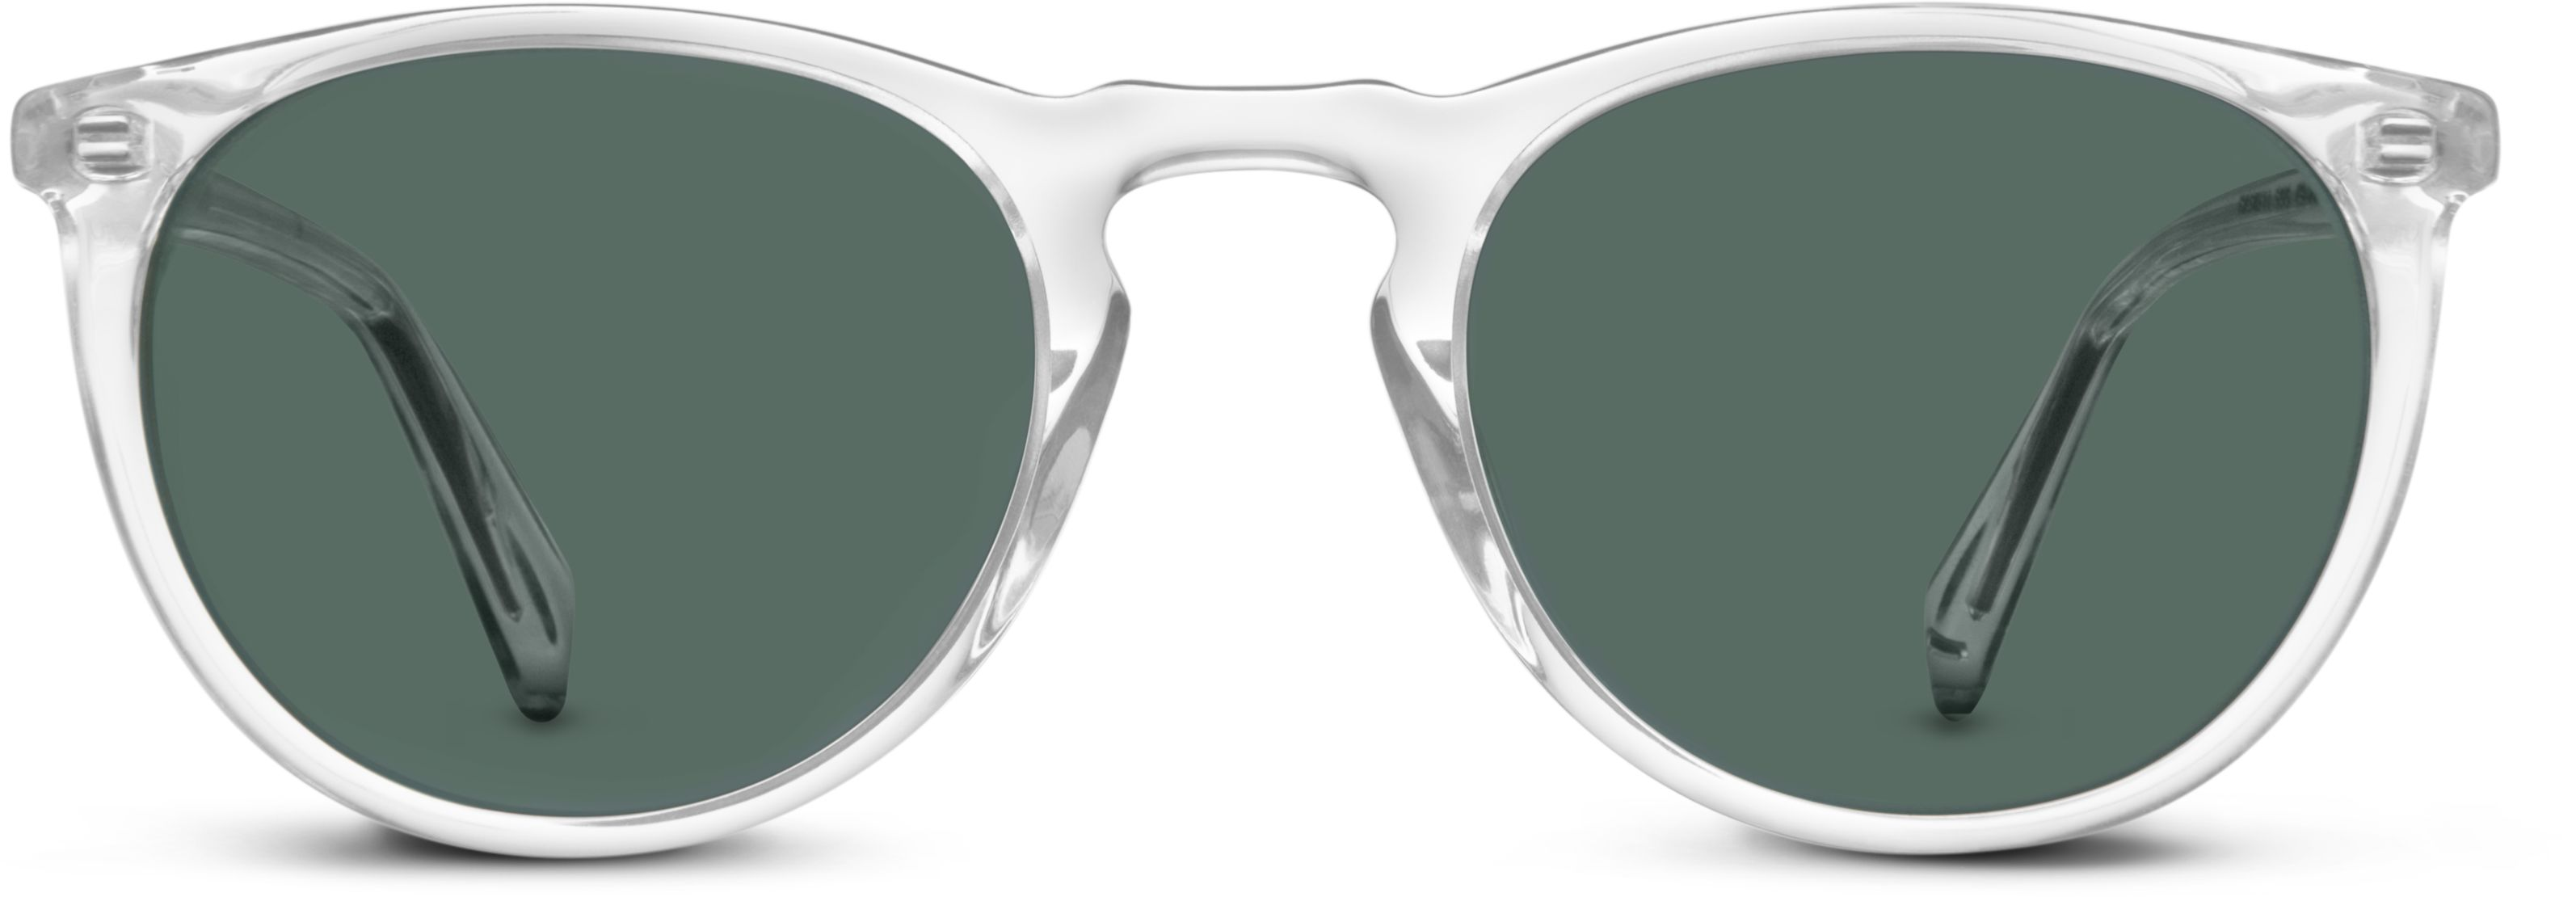 60ffe550909 Haskell Sunglasses in Crystal with Green Grey lenses for Men